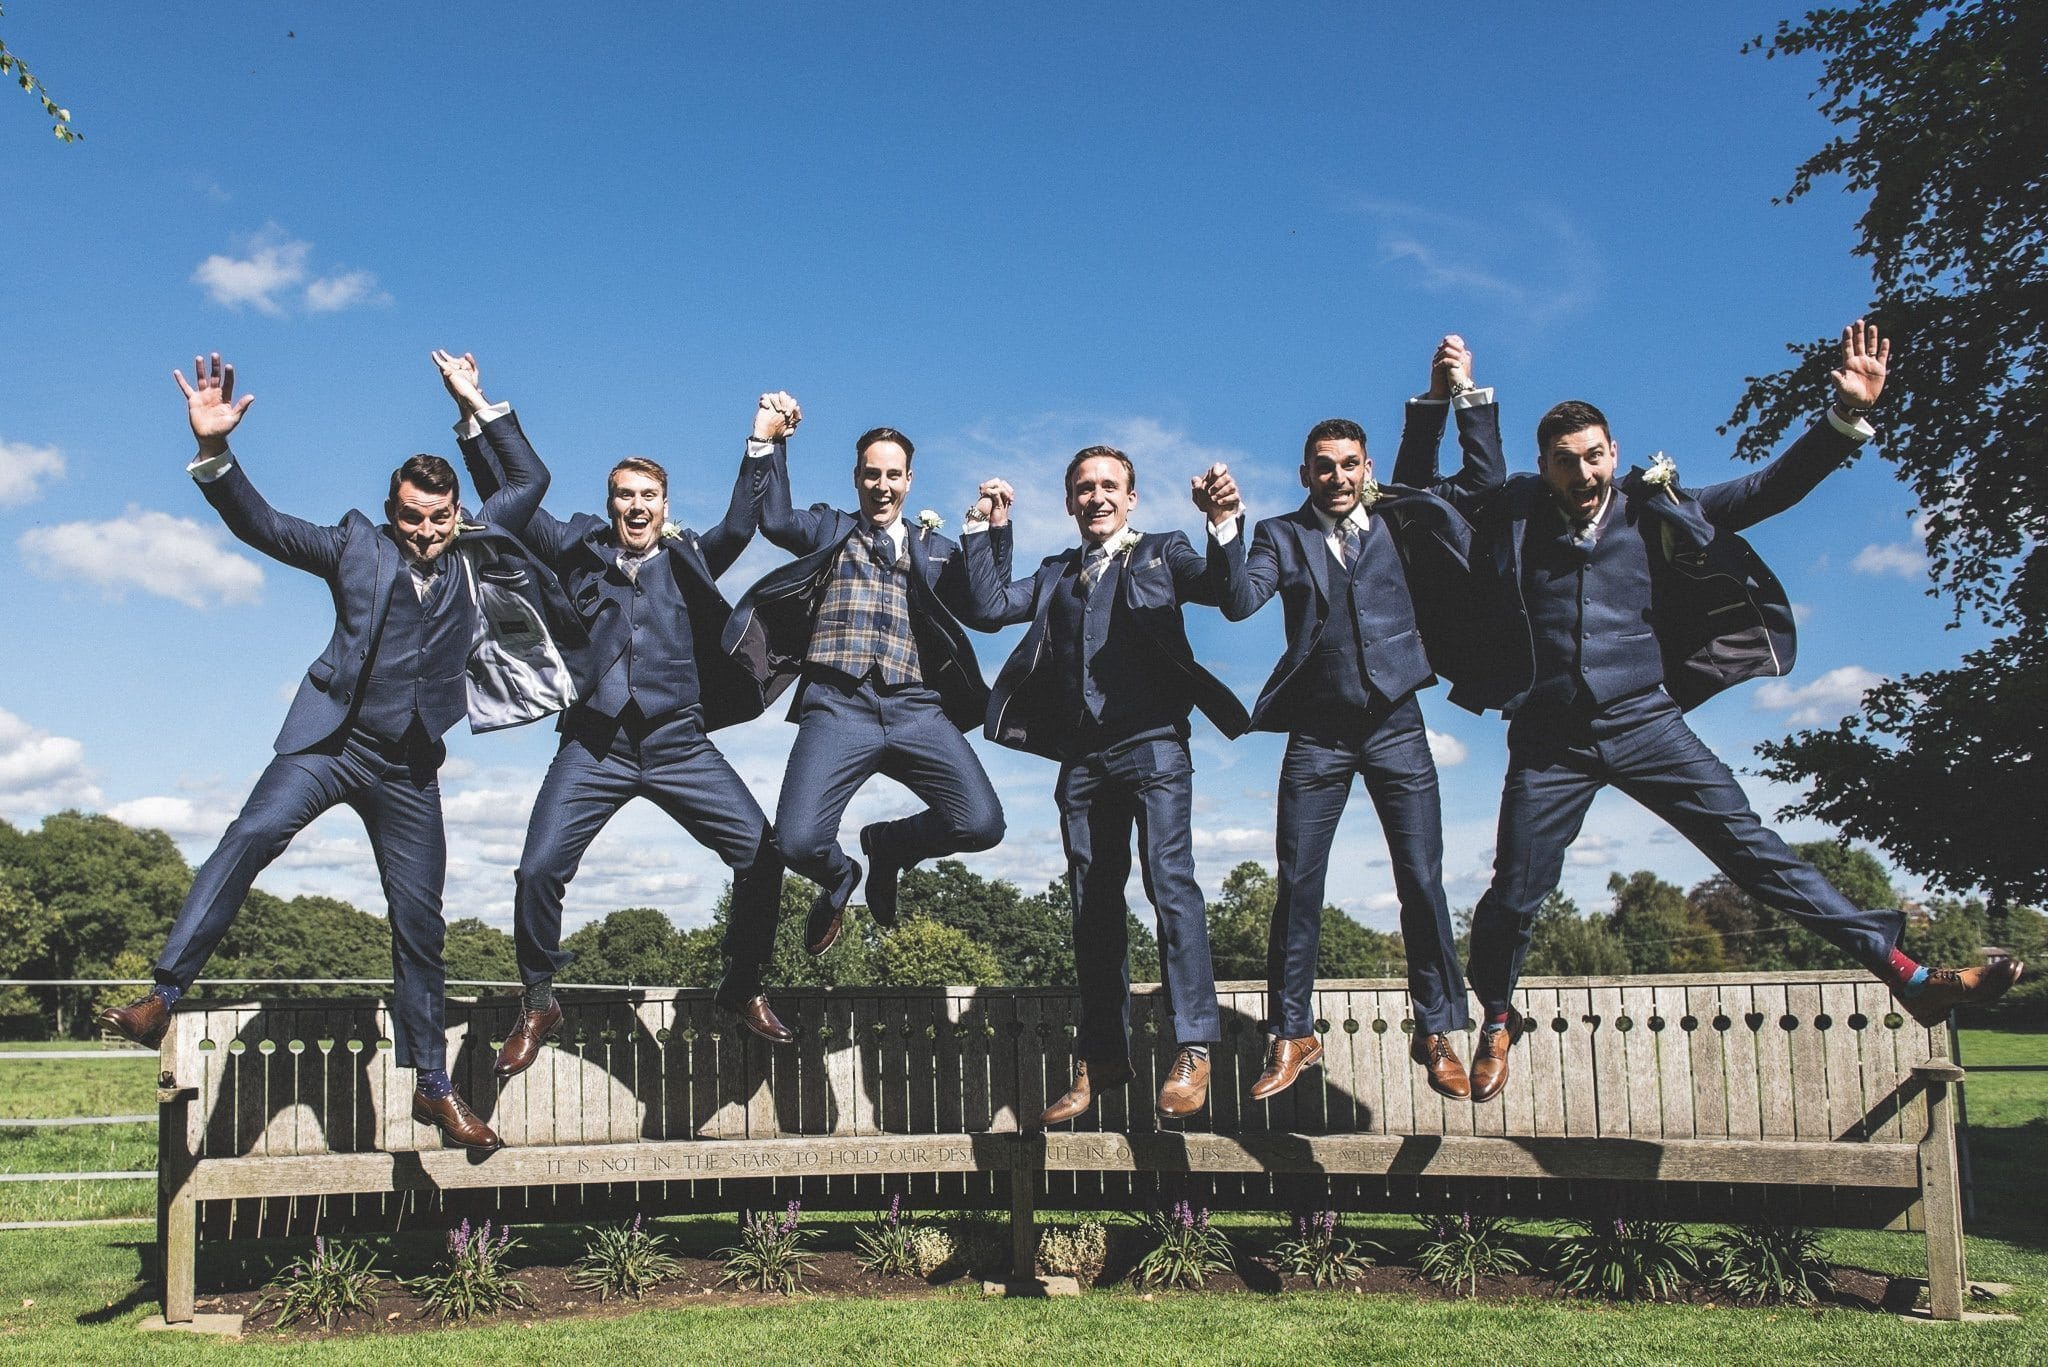 The groom and his groomsmen pictured in mid air as they jump off a bench